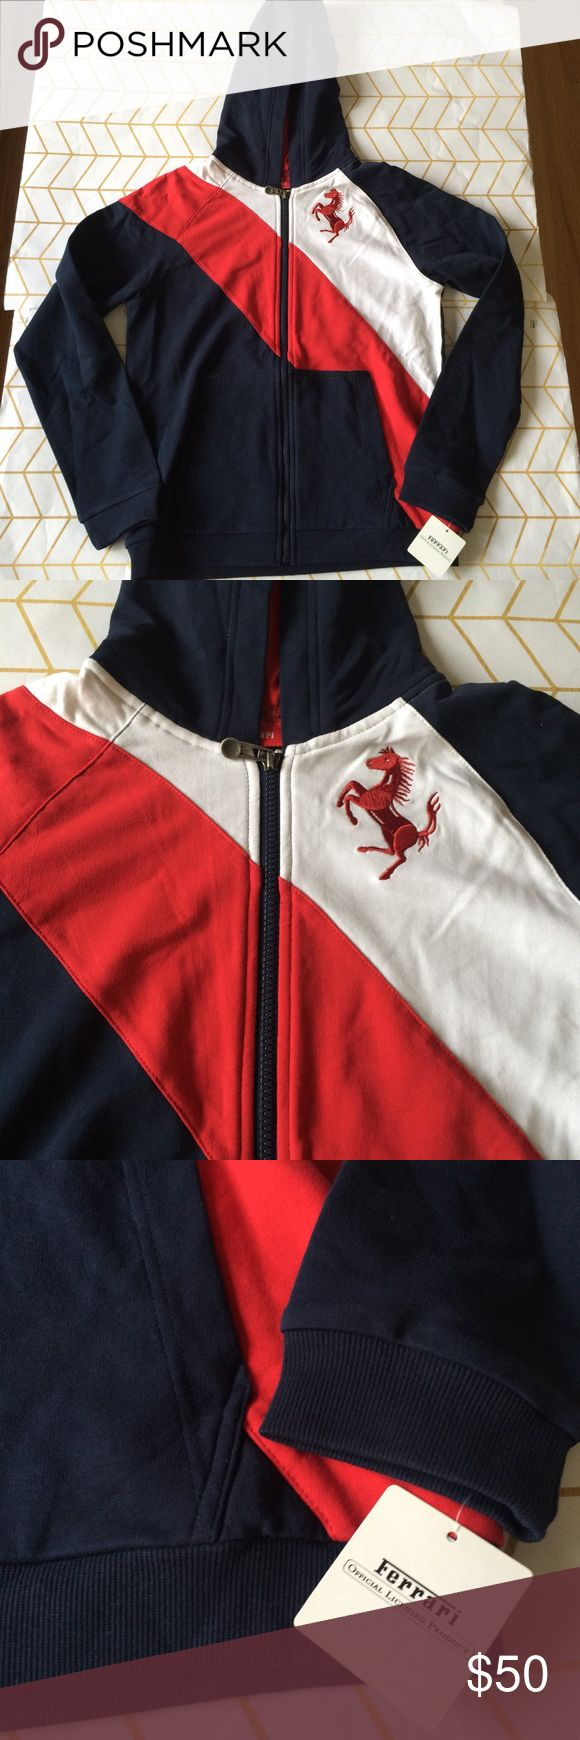 Sample Sale! Ferrari Boys Sweatshirt, M Ferrari Designer Sample Sale! Pls read: Tees are down to $35 (retail $70+), Polos/Sweatpants $40 (retail $80+), Jeans $45 (retail 100+), Sweatshirts $50 (retail $150+), and Jackets $65 (retail $180+), PLUS the 10% bundle discount! These items are heavily discounted by 60-85%, list/bundle prices are FIRM!  {These items are direct from the manufacturer and will have sample tags or no tag. They may have their size/brand printed on tag + NOT garment…